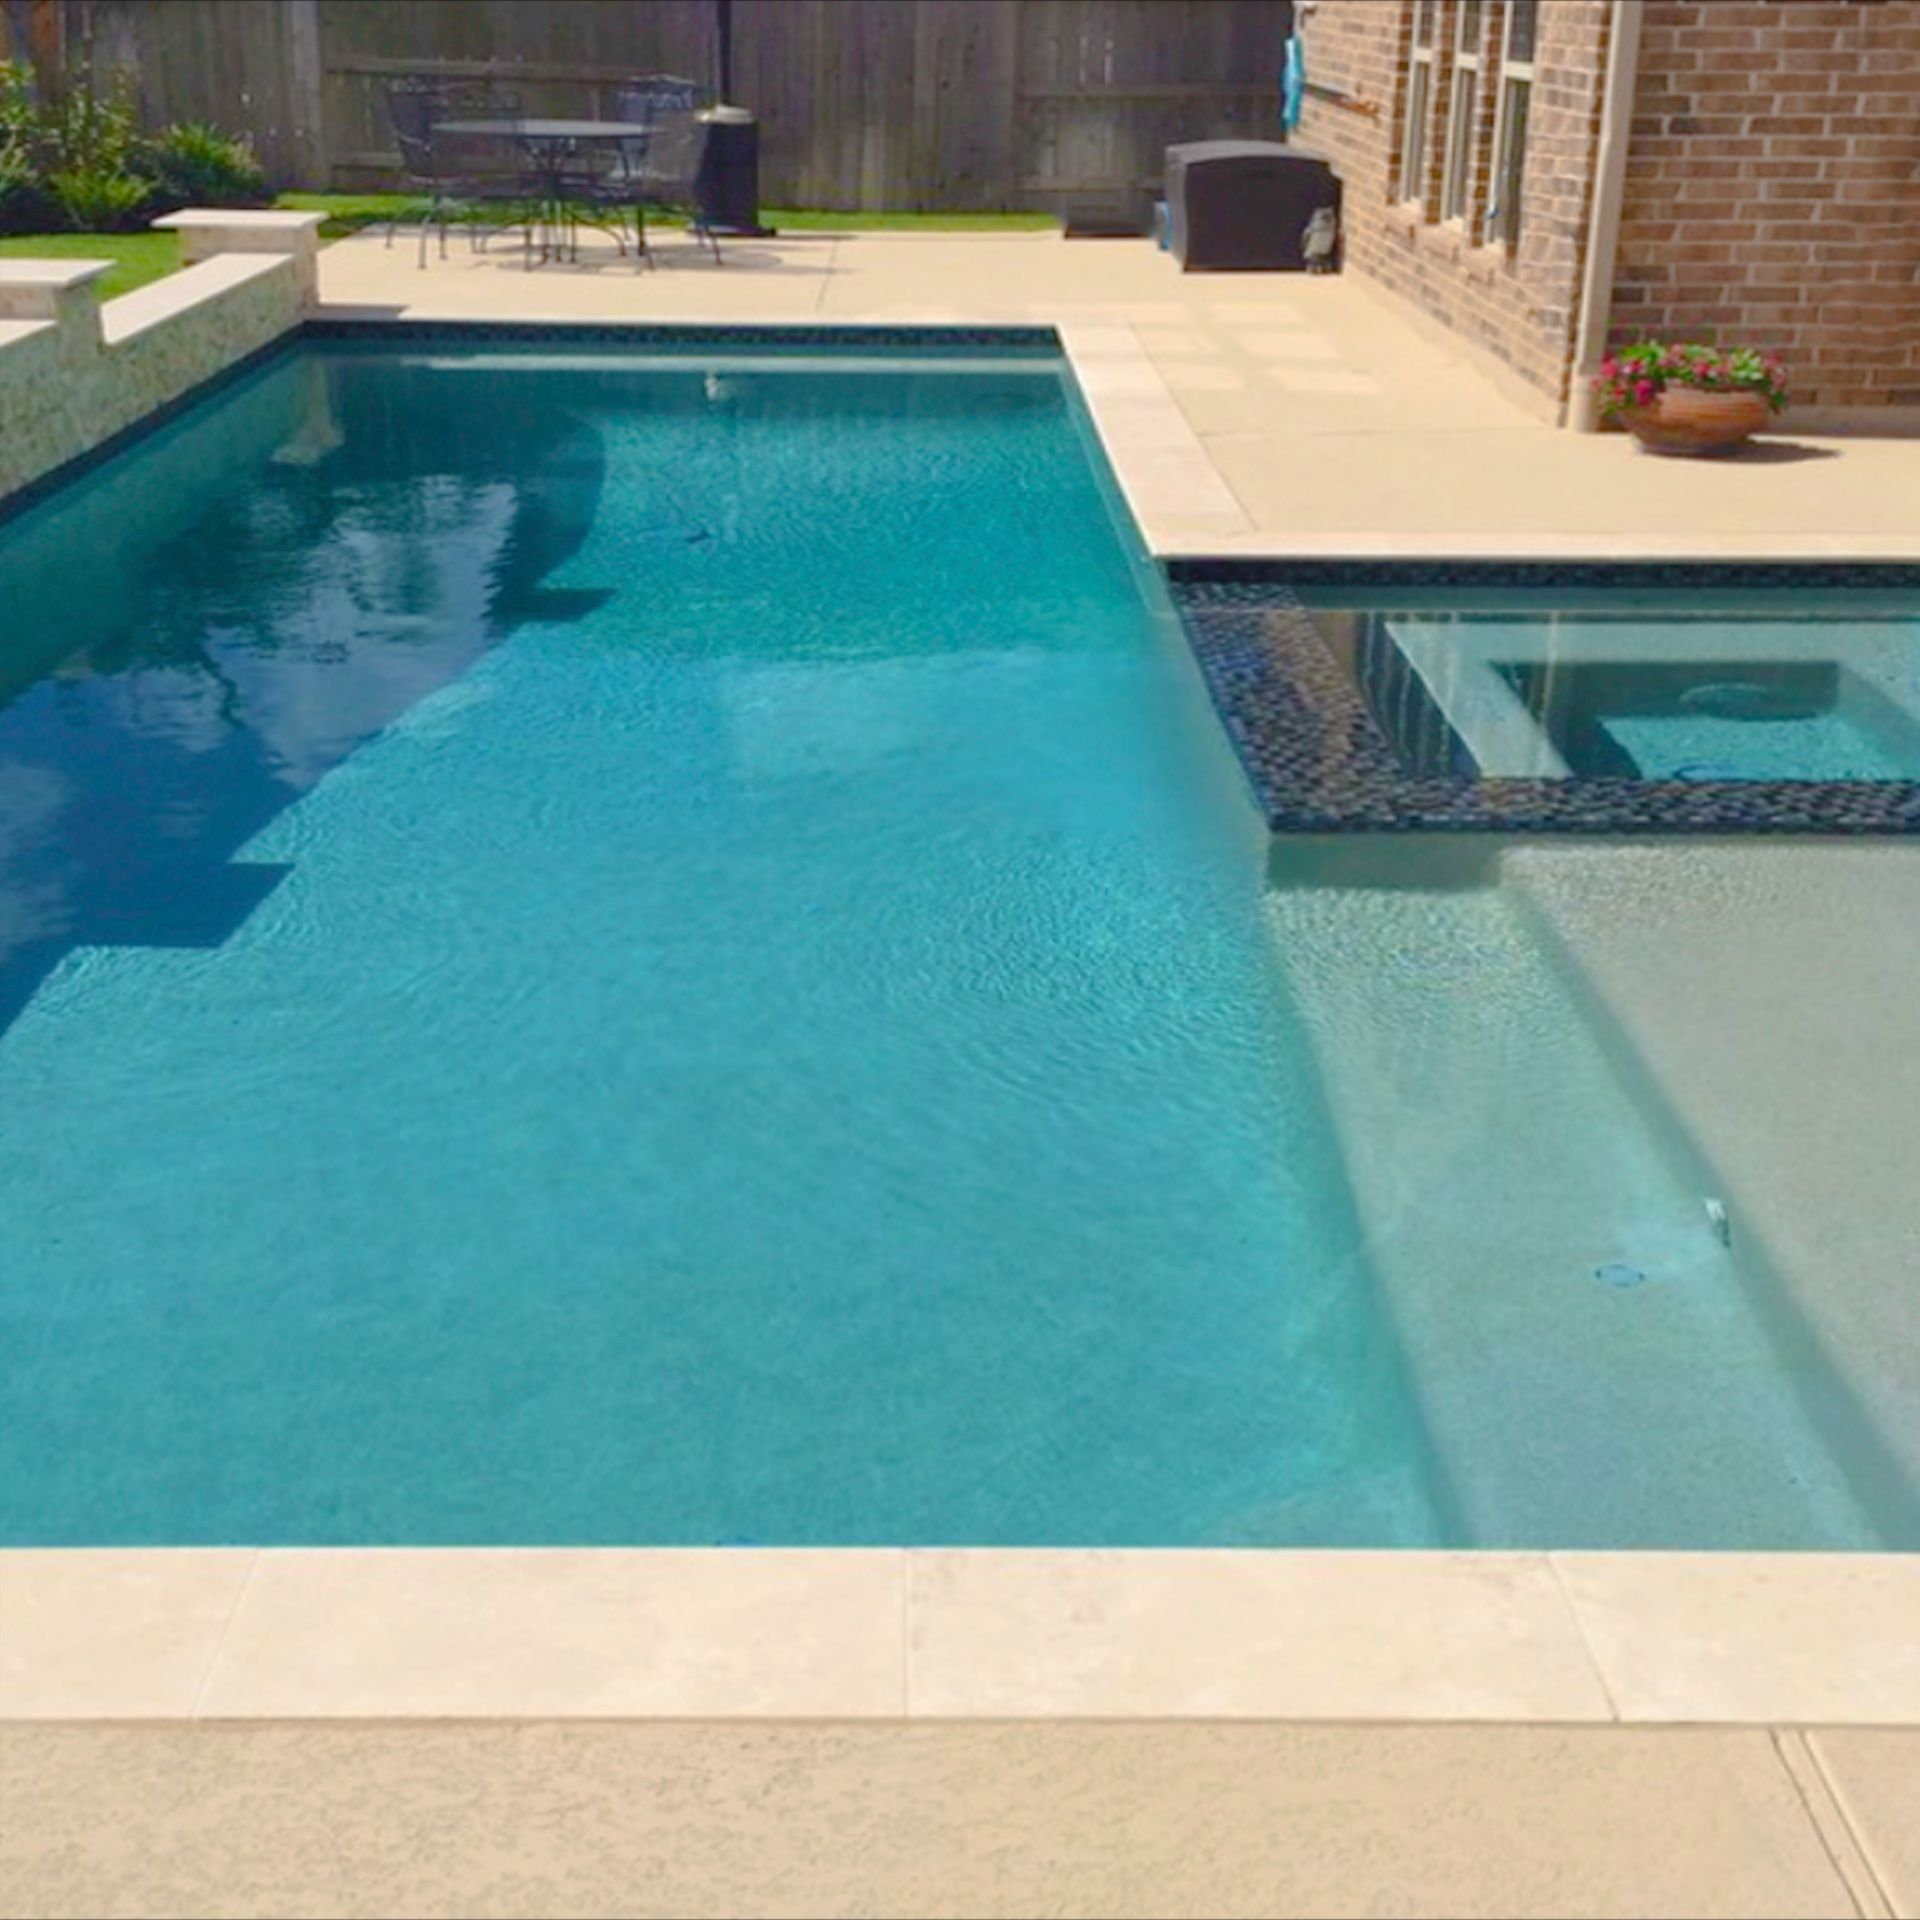 Pebble Surfaces Are All The Rage When It Comes To Interior Pool